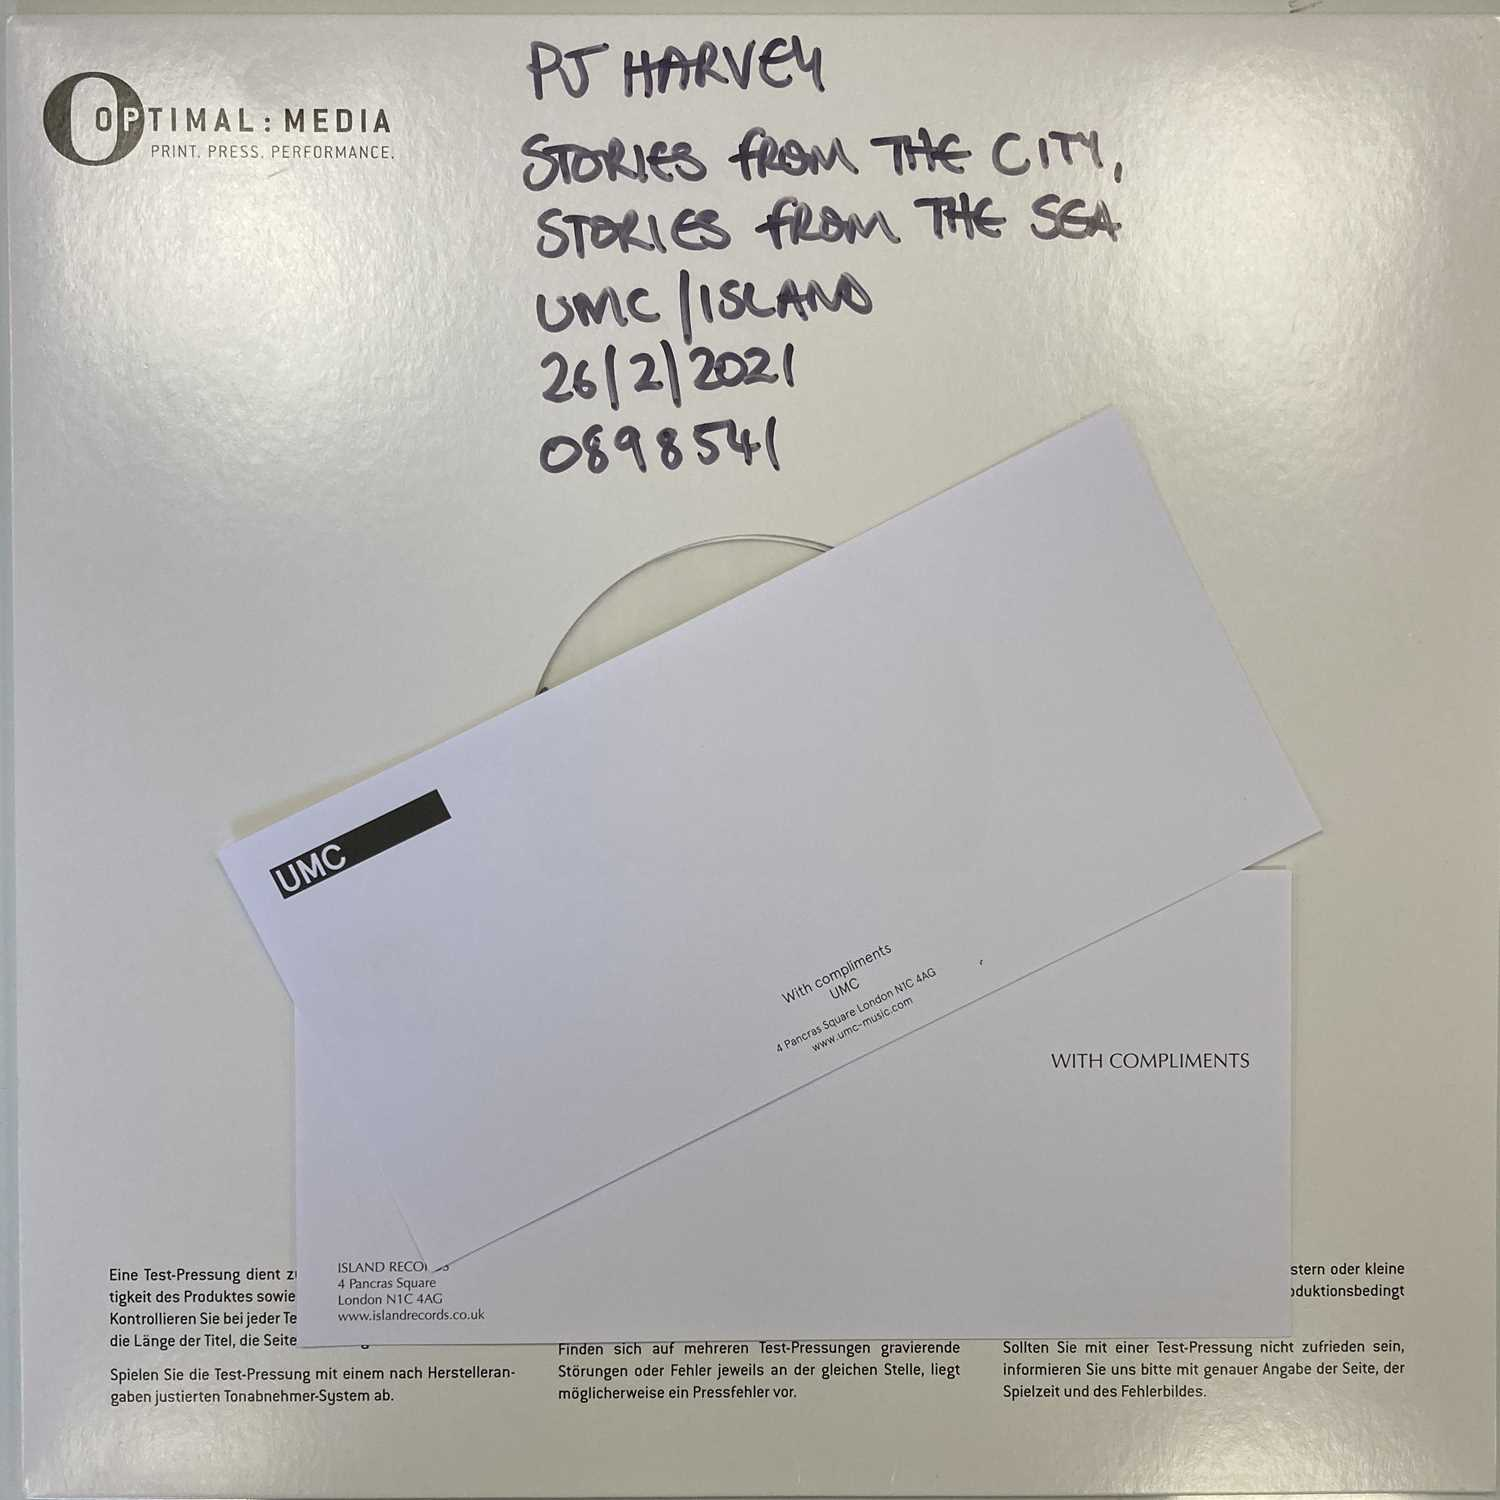 PJ HARVEY - STORIES FROM THE CITY, STORIES FROM THE SEA LP (SIGNED & ILLUSTRATED WHITE LABEL TEST PR - Image 5 of 5